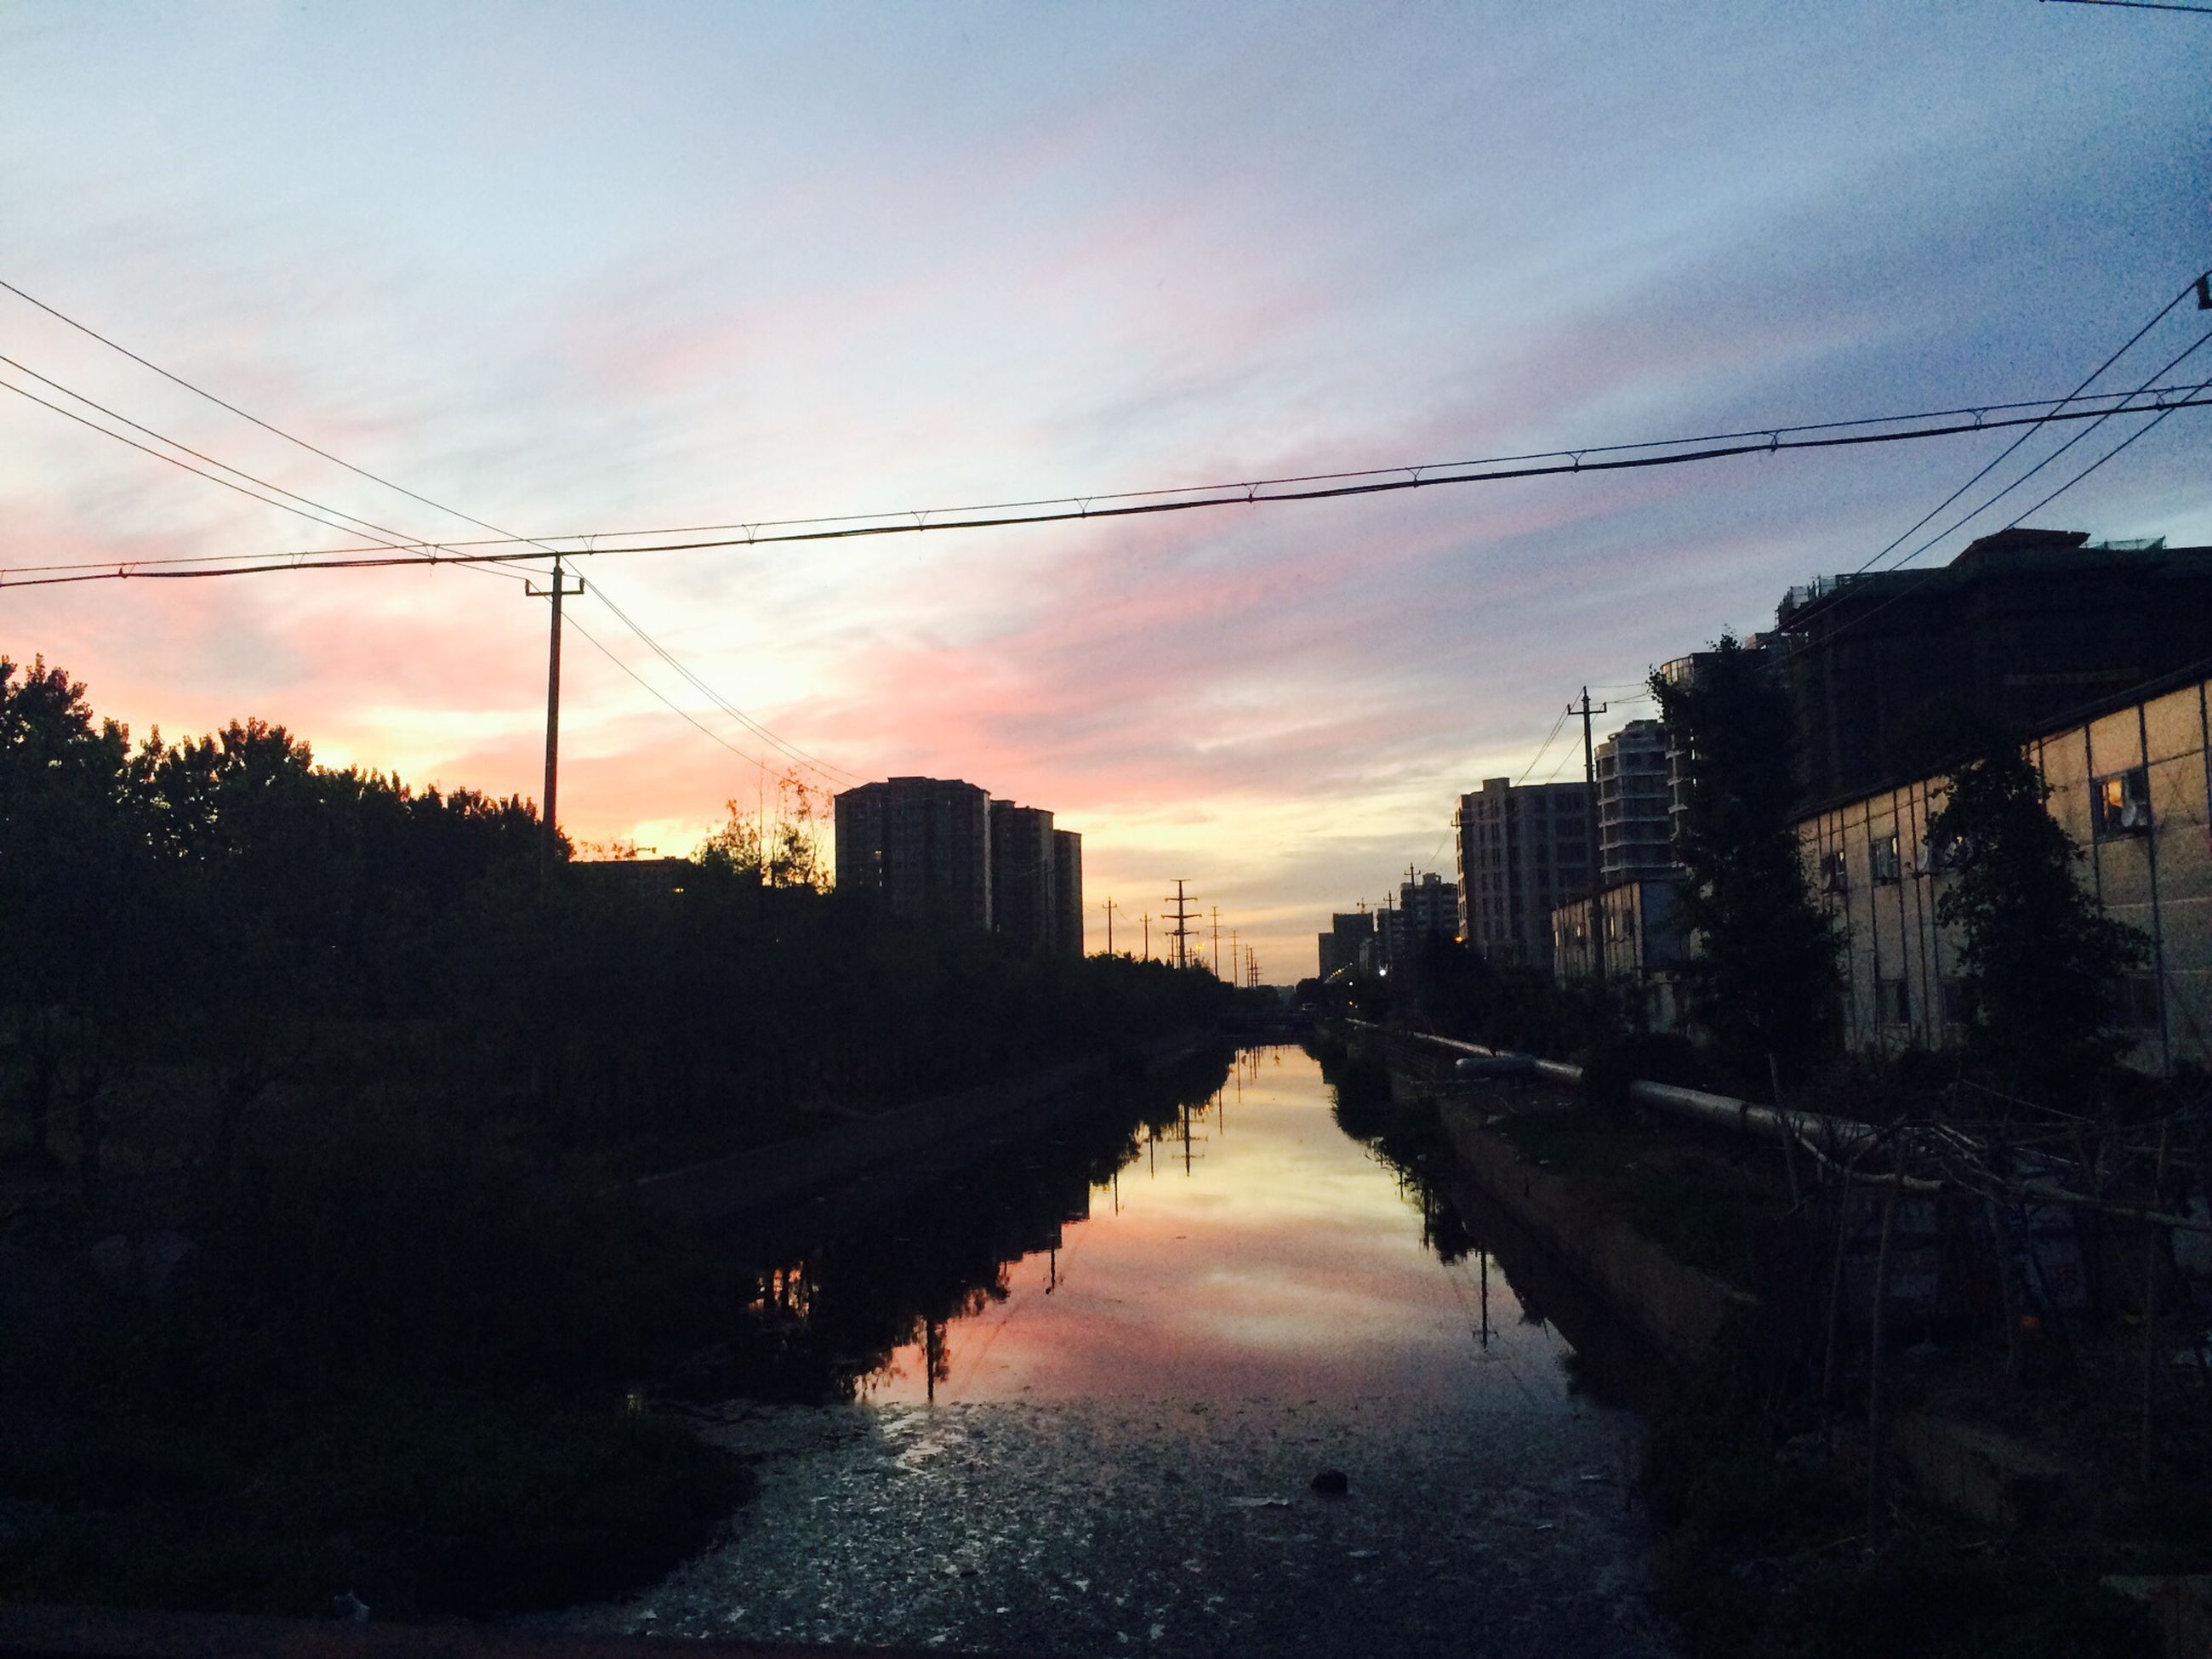 building exterior, architecture, built structure, sunset, power line, water, reflection, sky, electricity pylon, canal, waterfront, cable, connection, river, cloud - sky, silhouette, city, residential structure, electricity, house